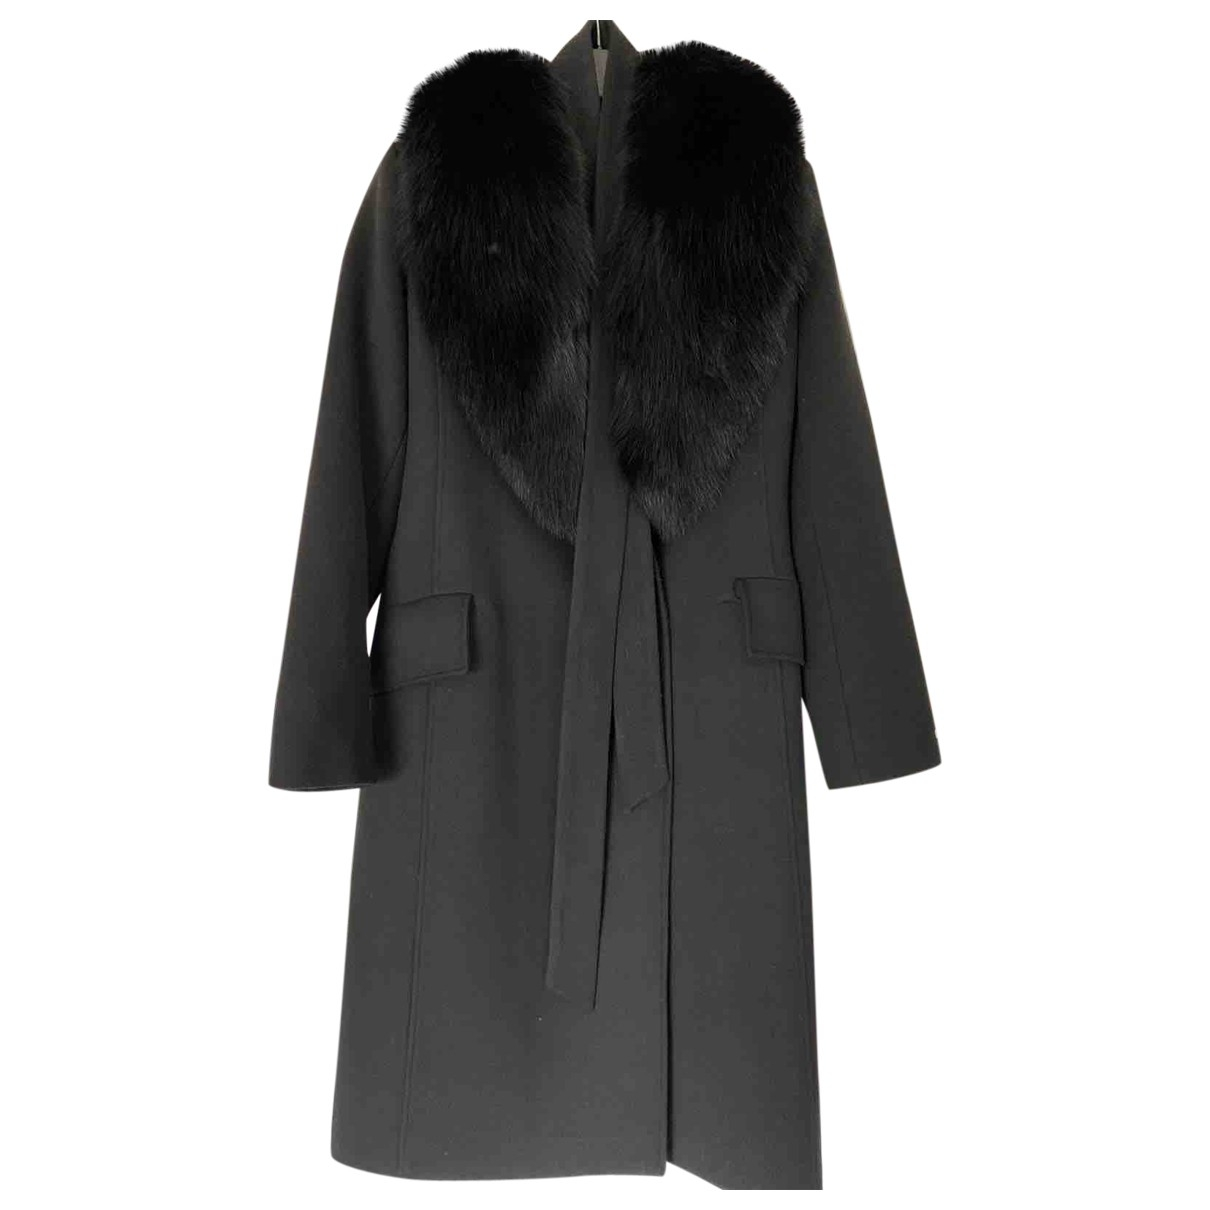 Non Signé / Unsigned \N Black Cashmere coat for Women S International